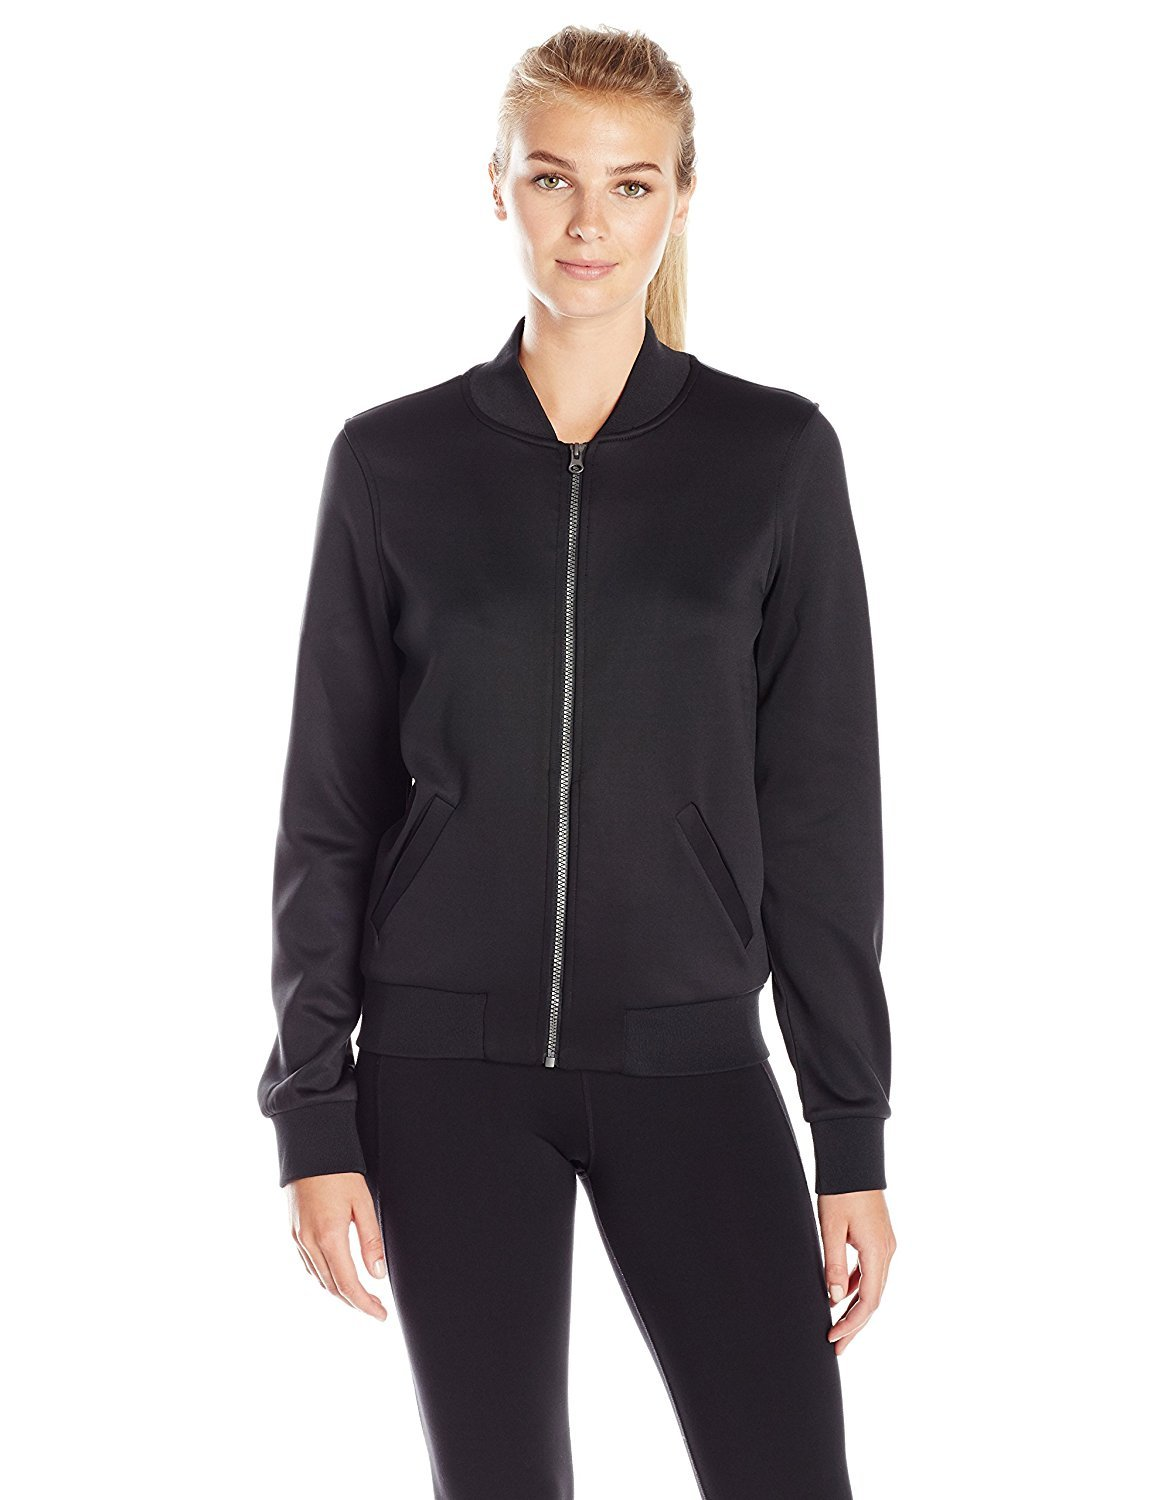 Prismsport Women's Bomber Jacket Black Medium [並行輸入品] B075CDSF8C